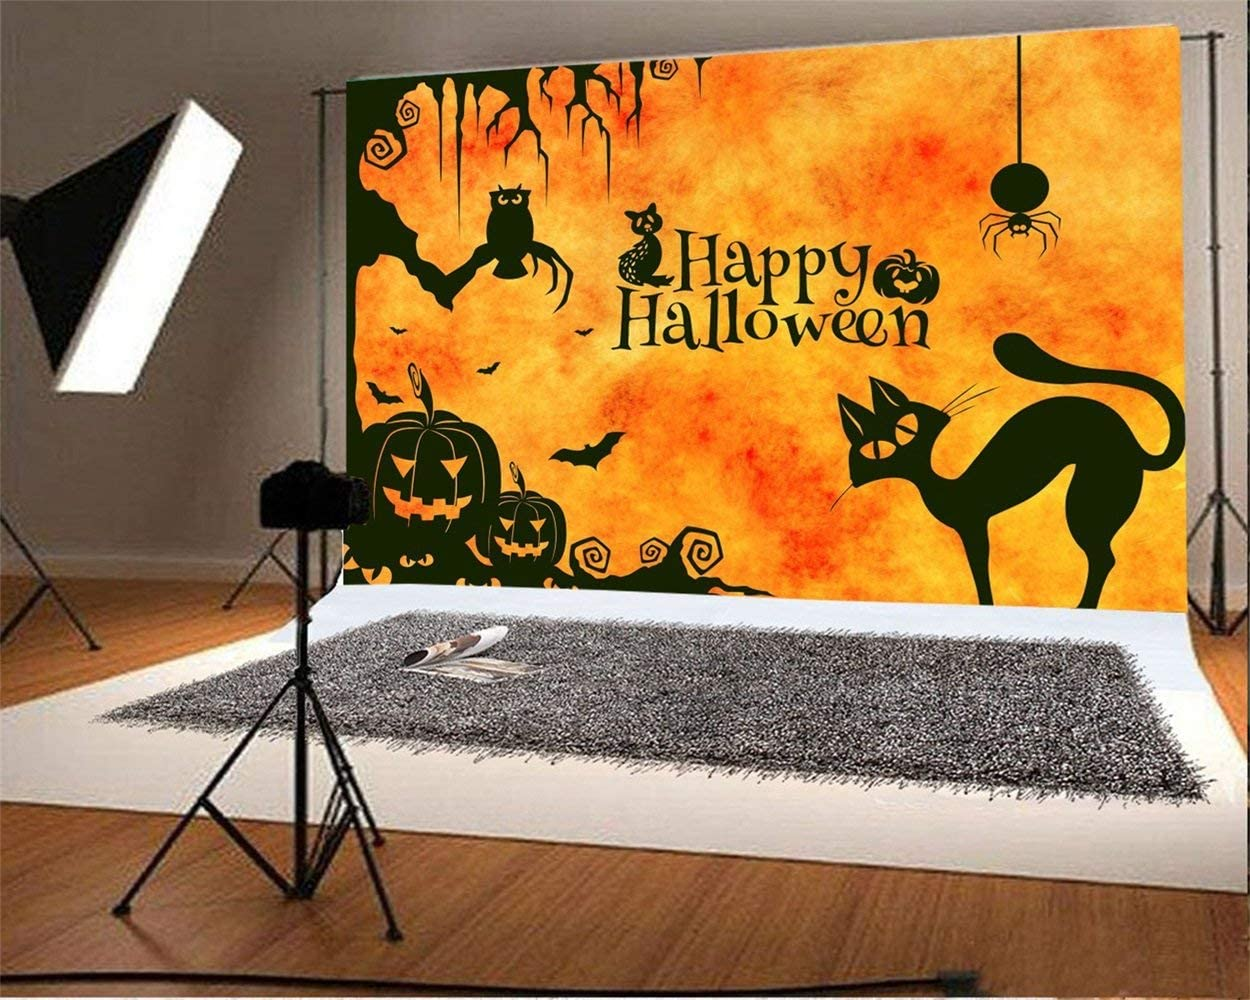 Happy Halloween Backdrop 10x6.5ft Polyester Photography Background Orange Tone Gloomy Night Grimace Grinning Pumpkin Lamps Owl Black Cat Hanging Spider Illustration Trick or Treat Party Kids Shoot